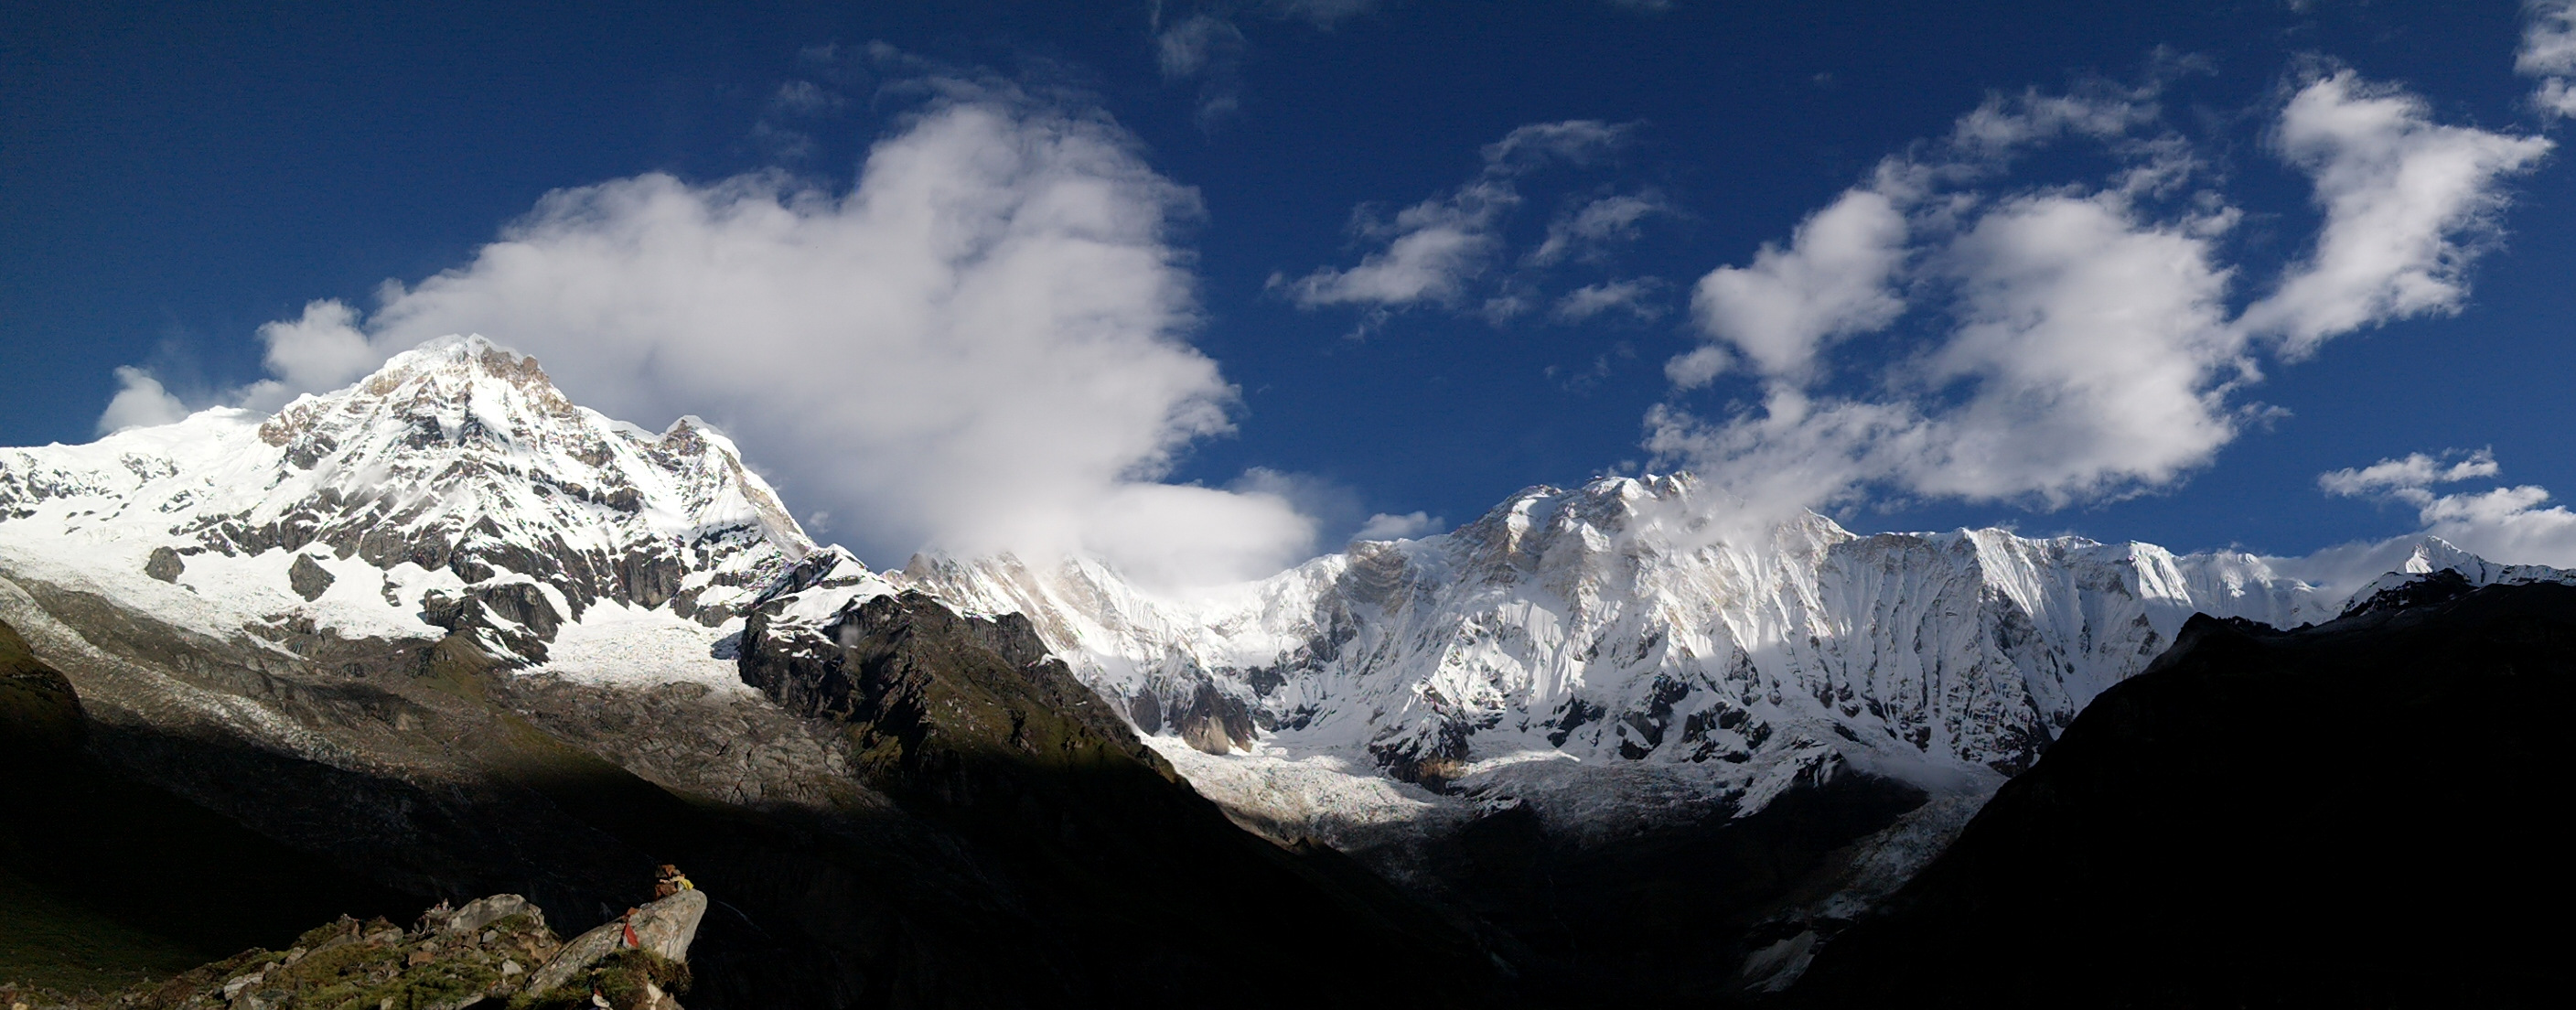 Annapurna Base Camp - Annapurna South and Annapurna I - Move Our World